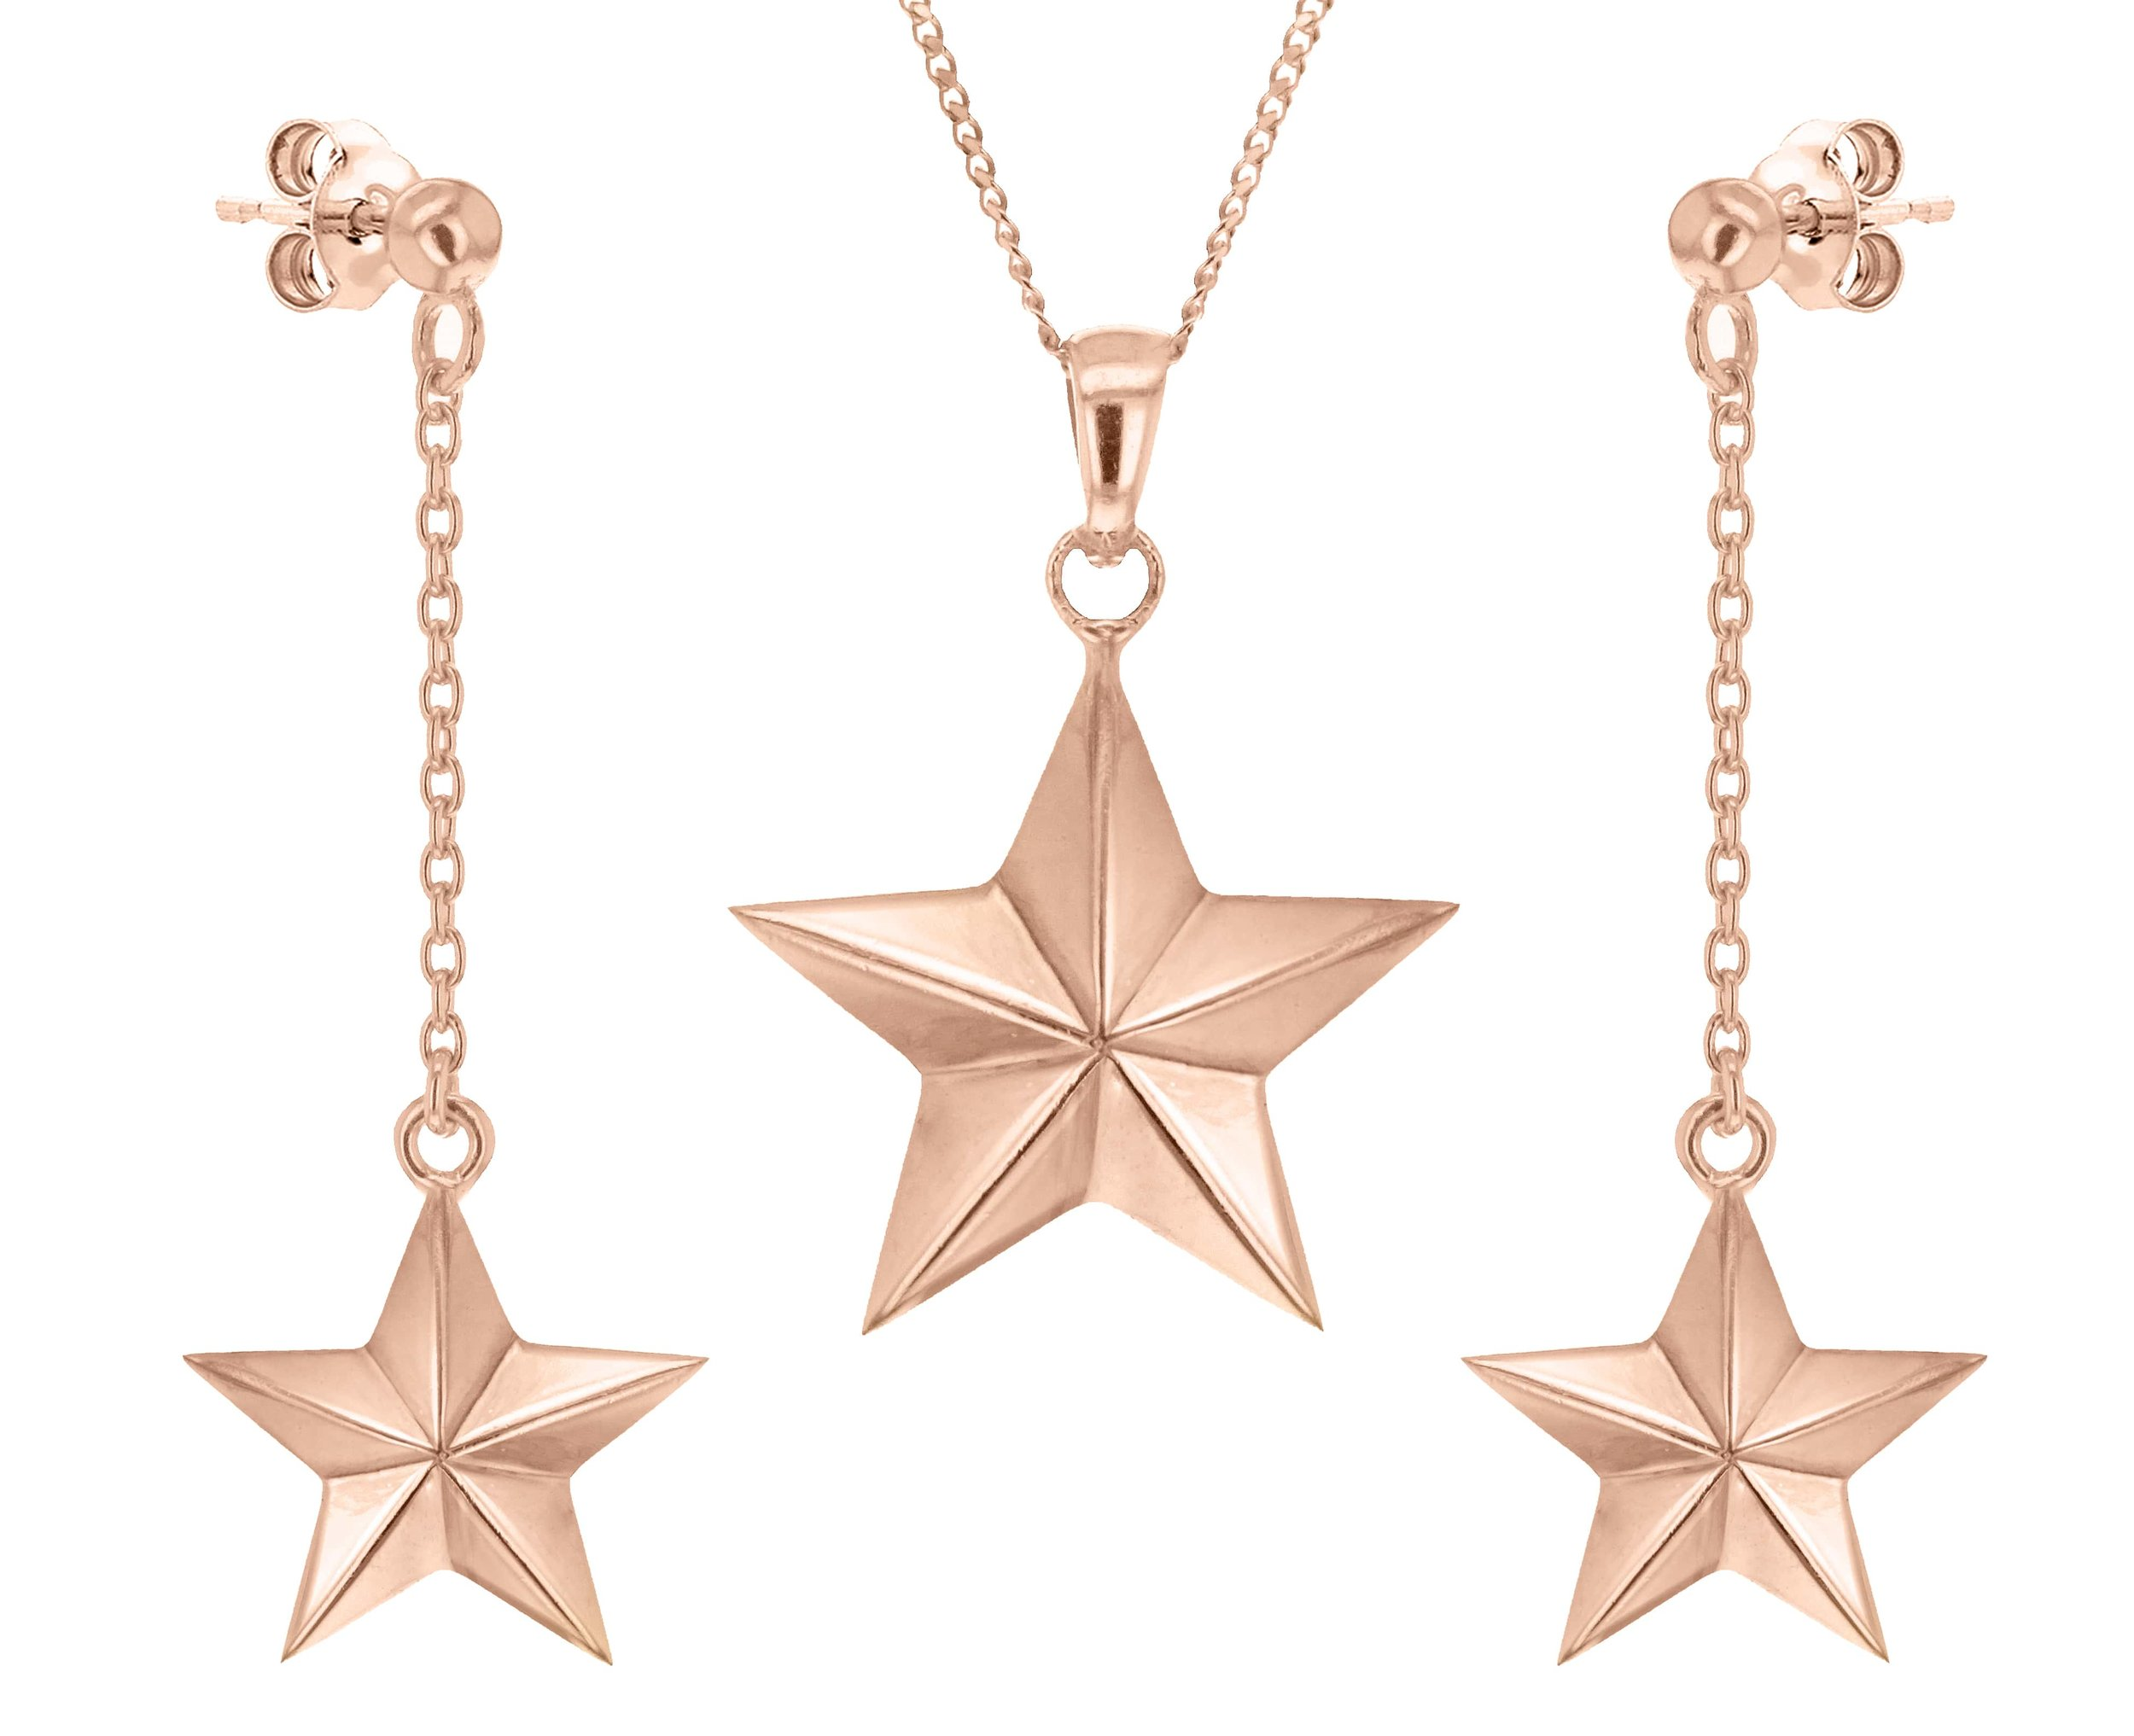 True rocks gold star chain and earrings set